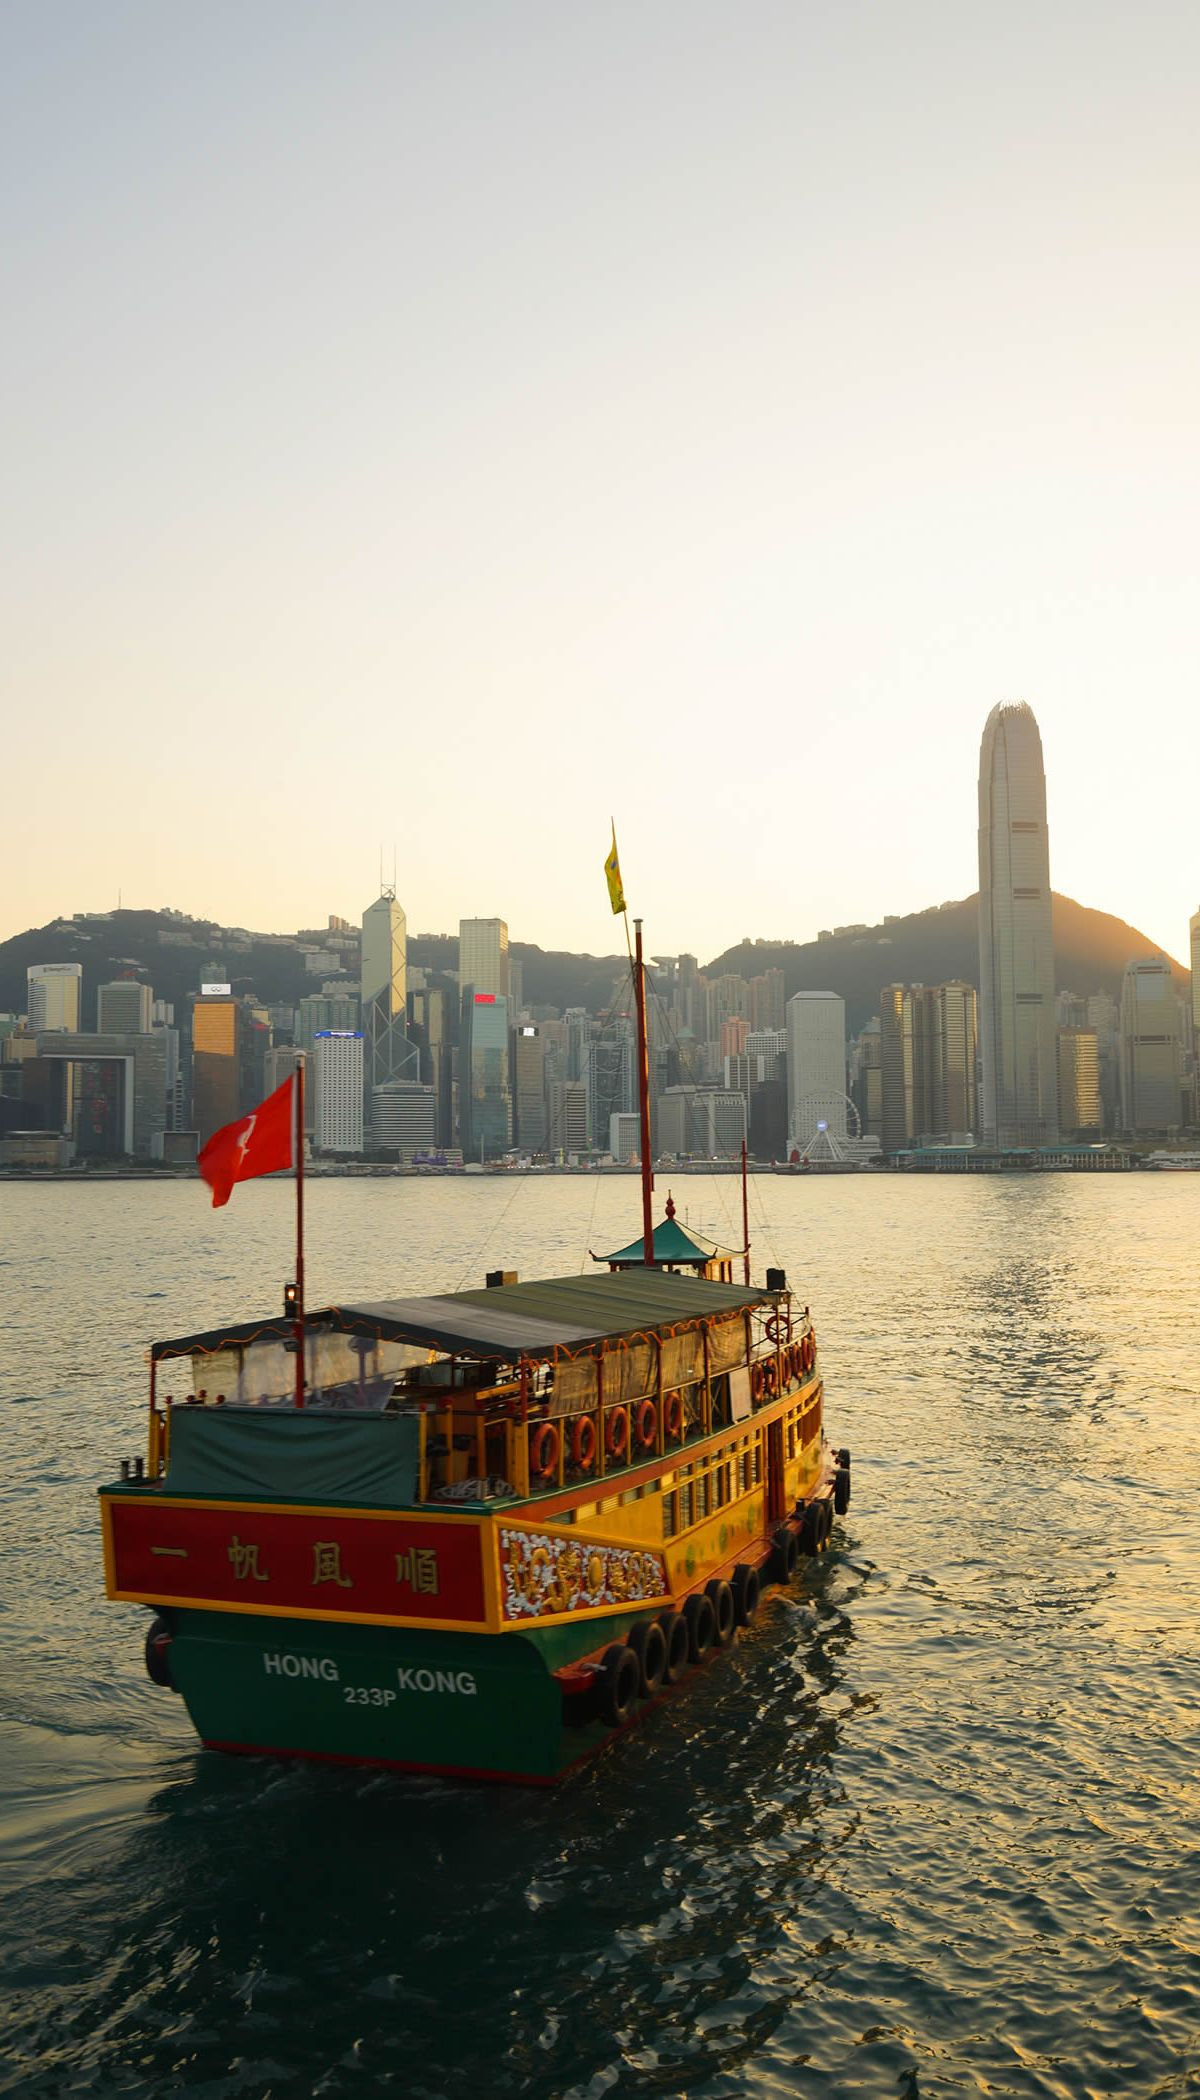 These are the reasons why we love Hong Kong.